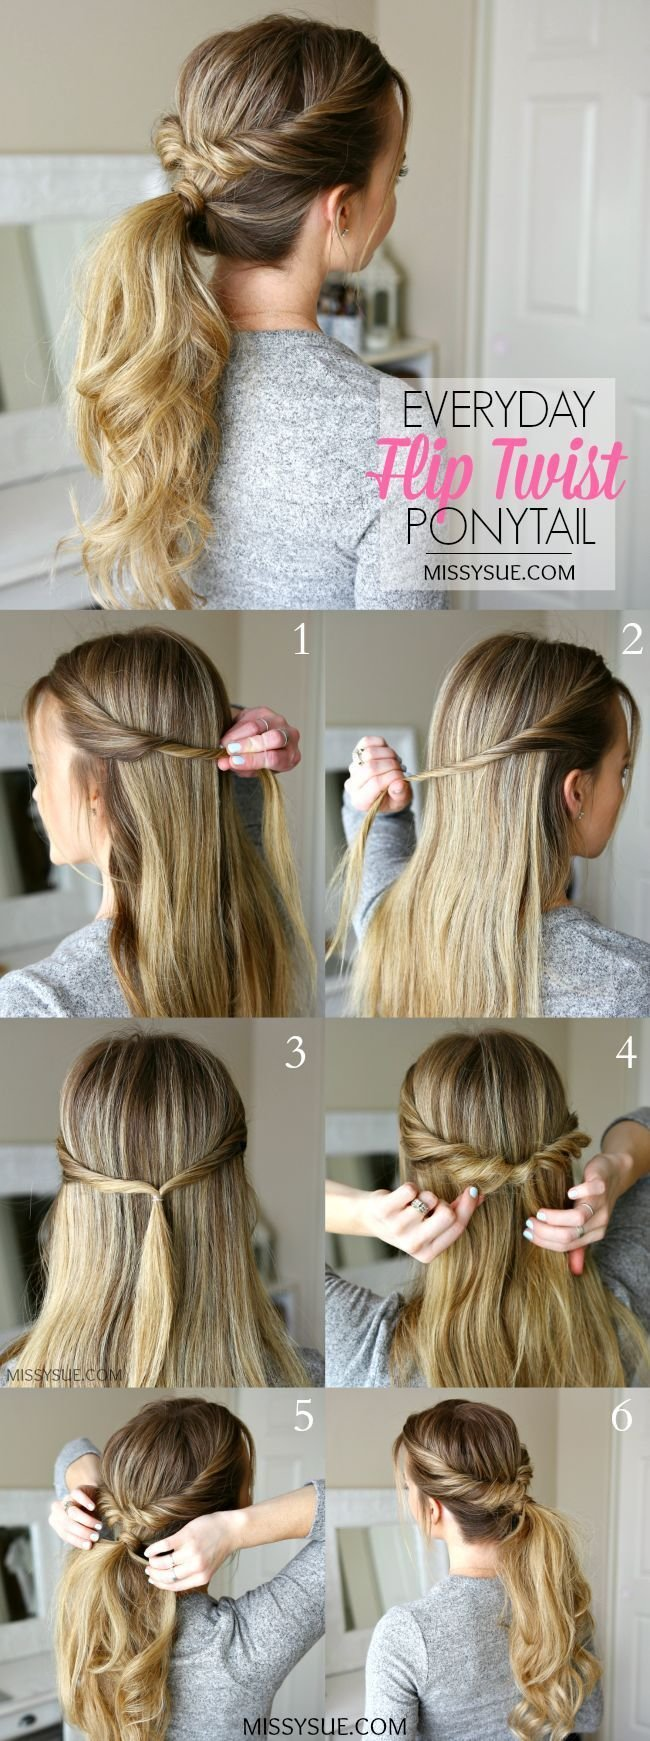 New Best 25 Quick Work Hairstyles Ideas On Pinterest Quick Ideas With Pictures